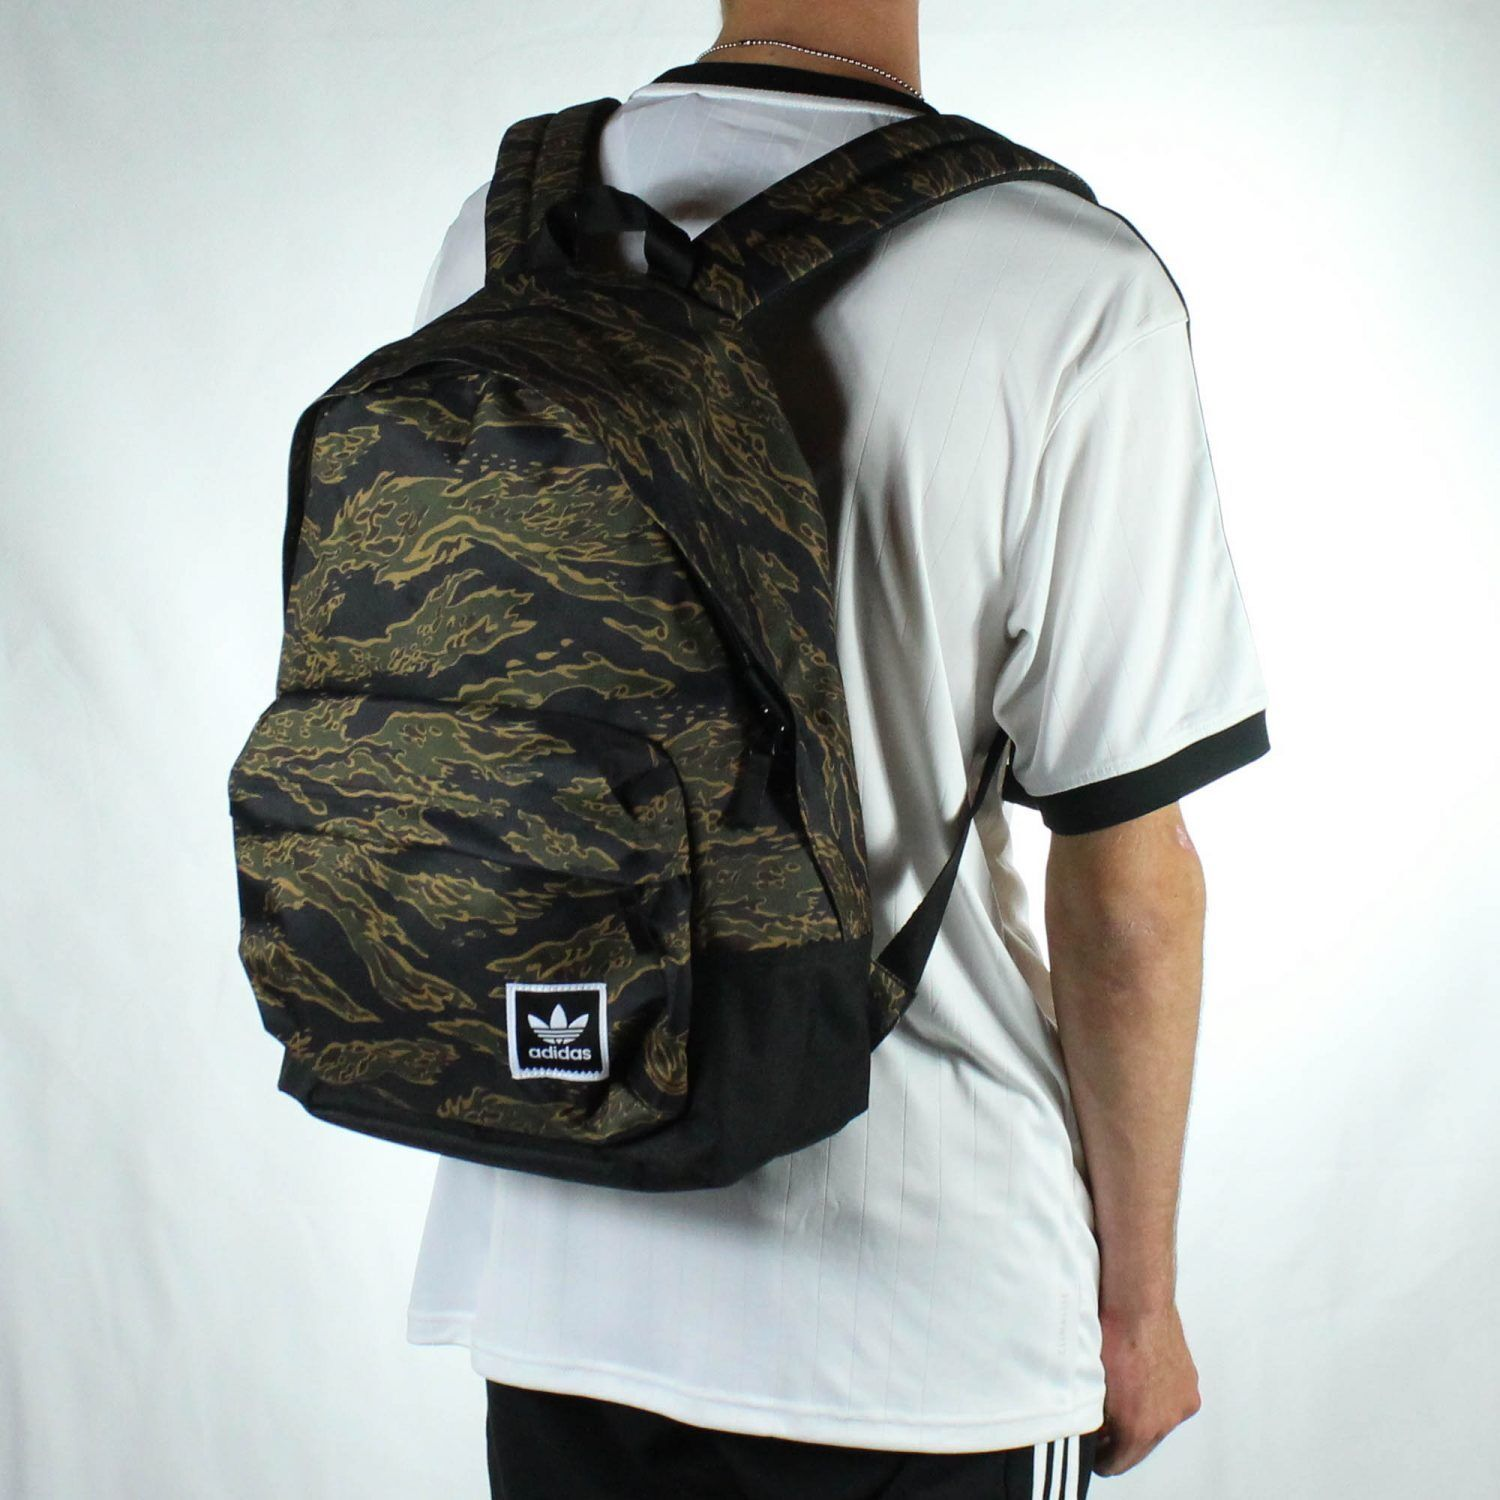 Details about Adidas AOP Backpack Rucksack for School Work Travel - Tiger  Camo 113d4c0200043